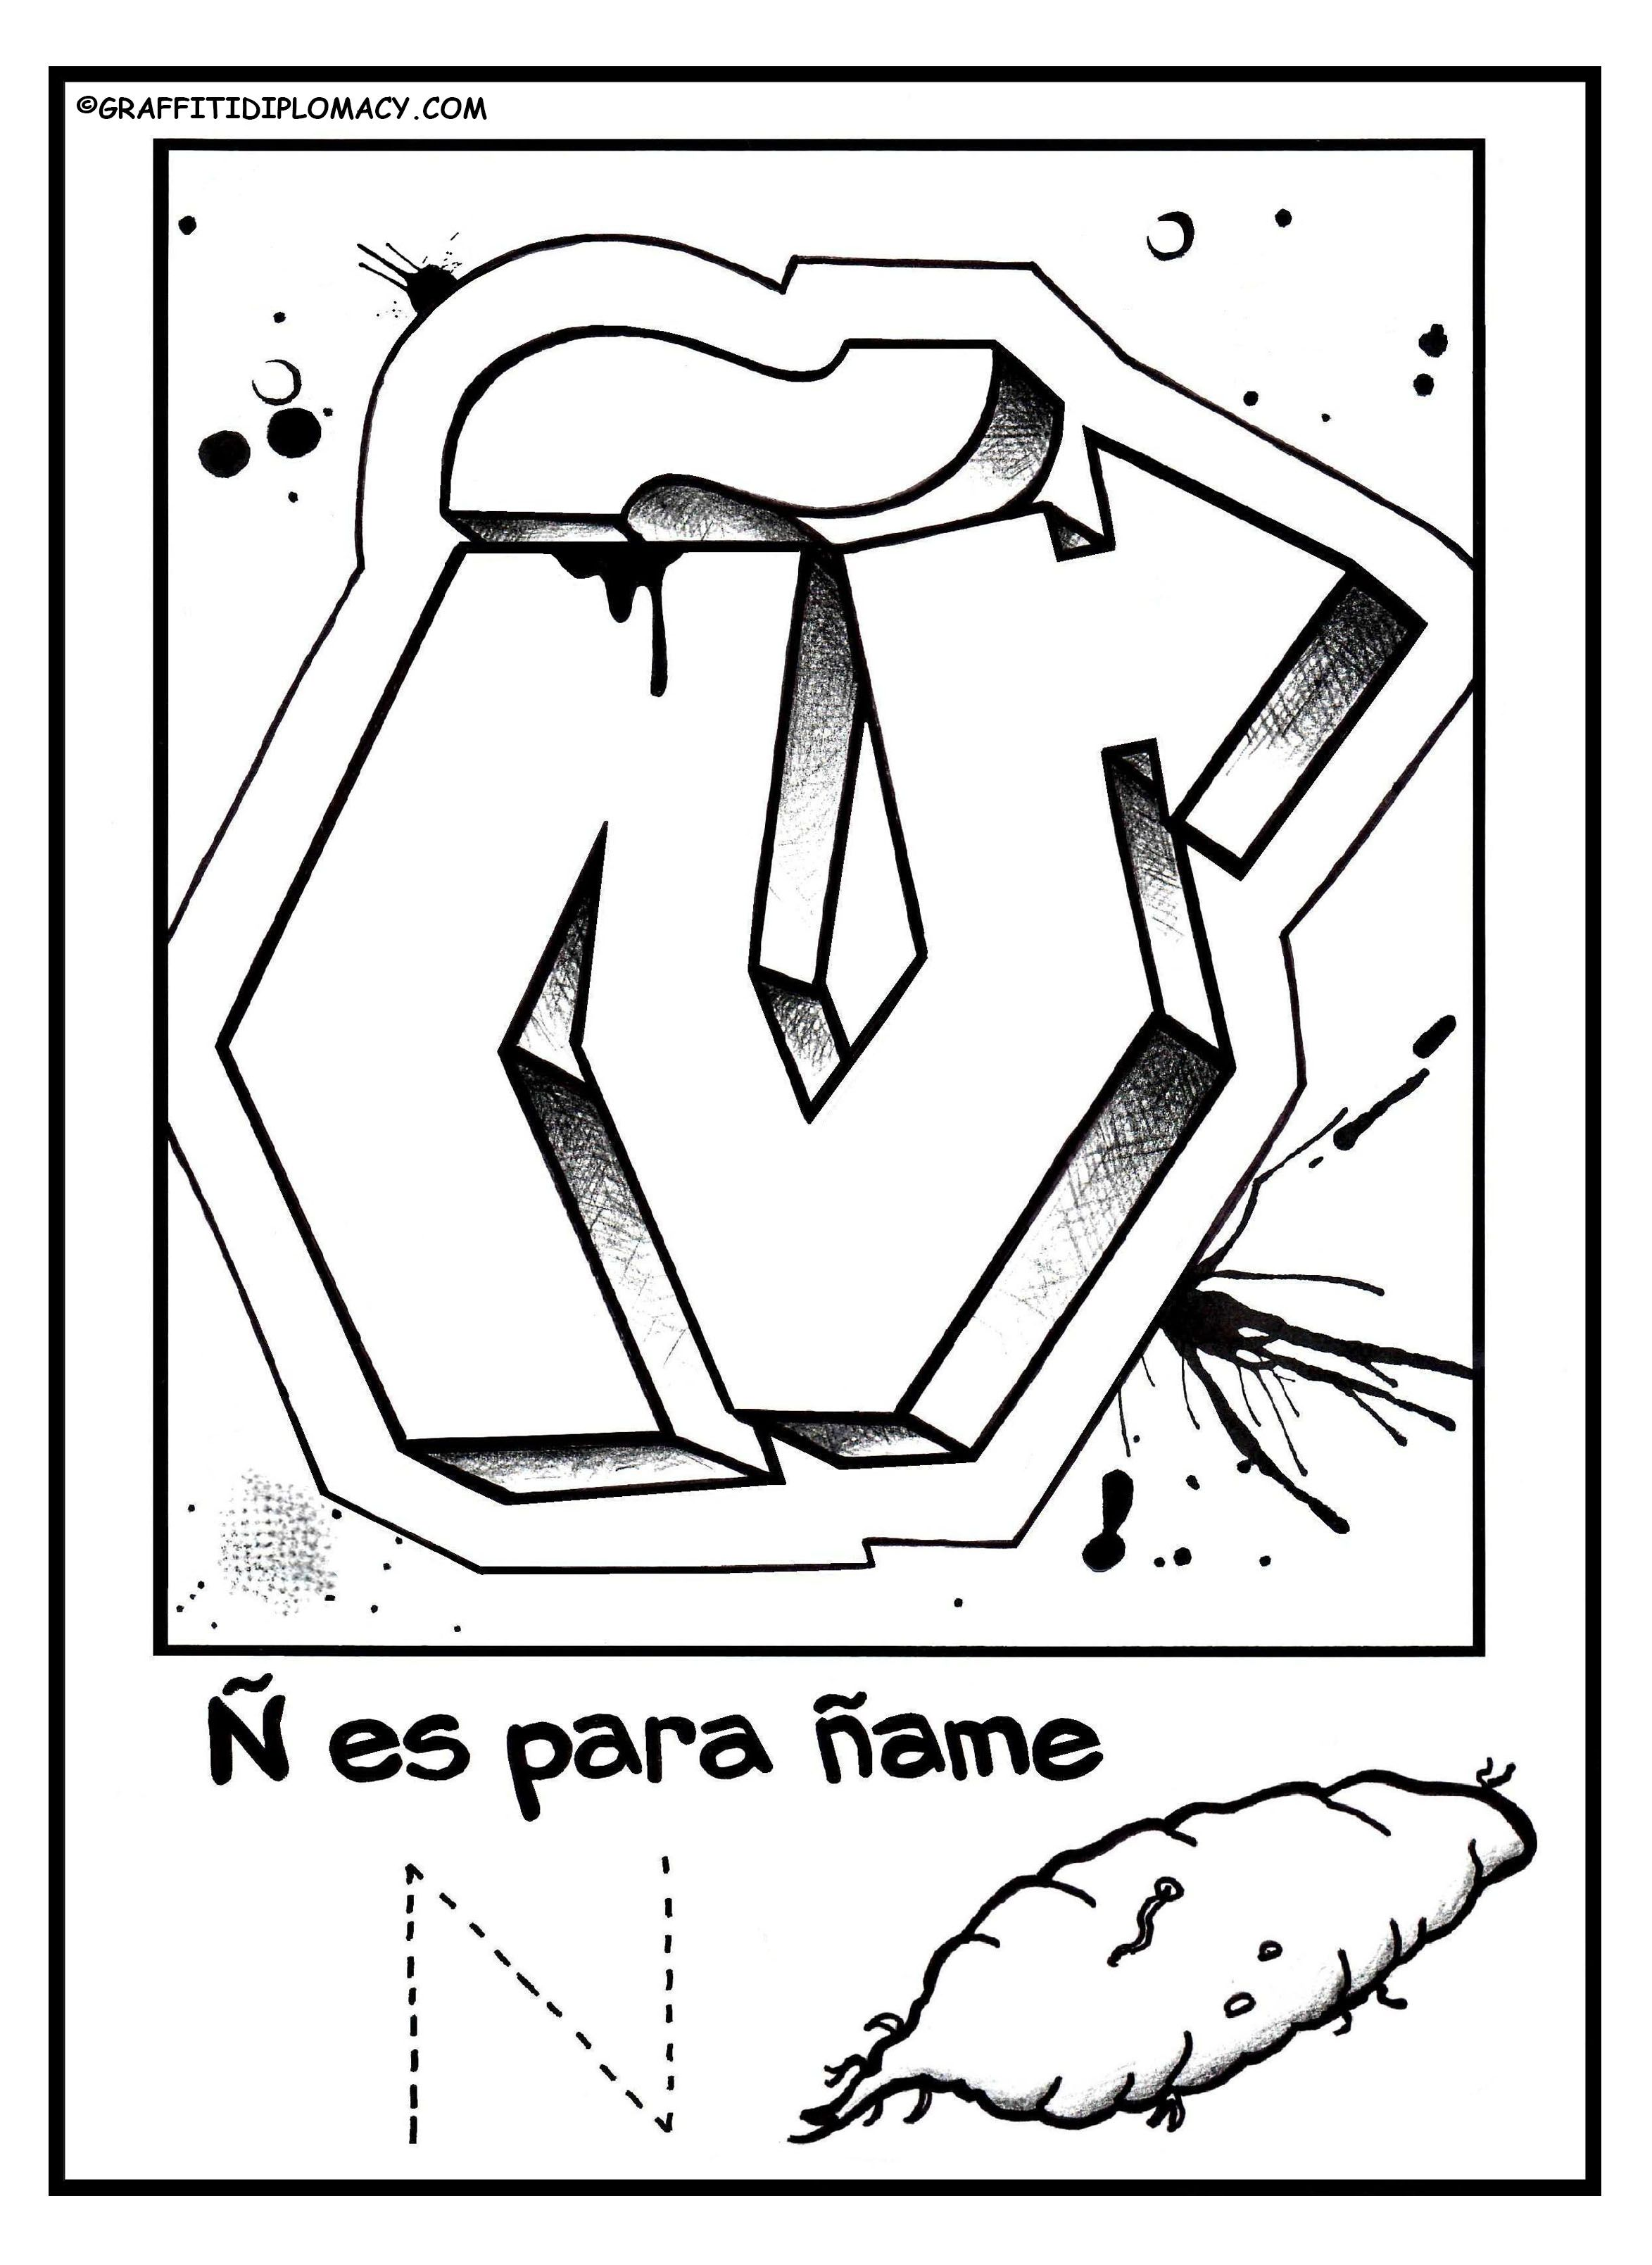 How To Draw Graffiti Letters Step By Step On Paper Fun To Color Graffiti Letters To Help Kids Learn The Spanish